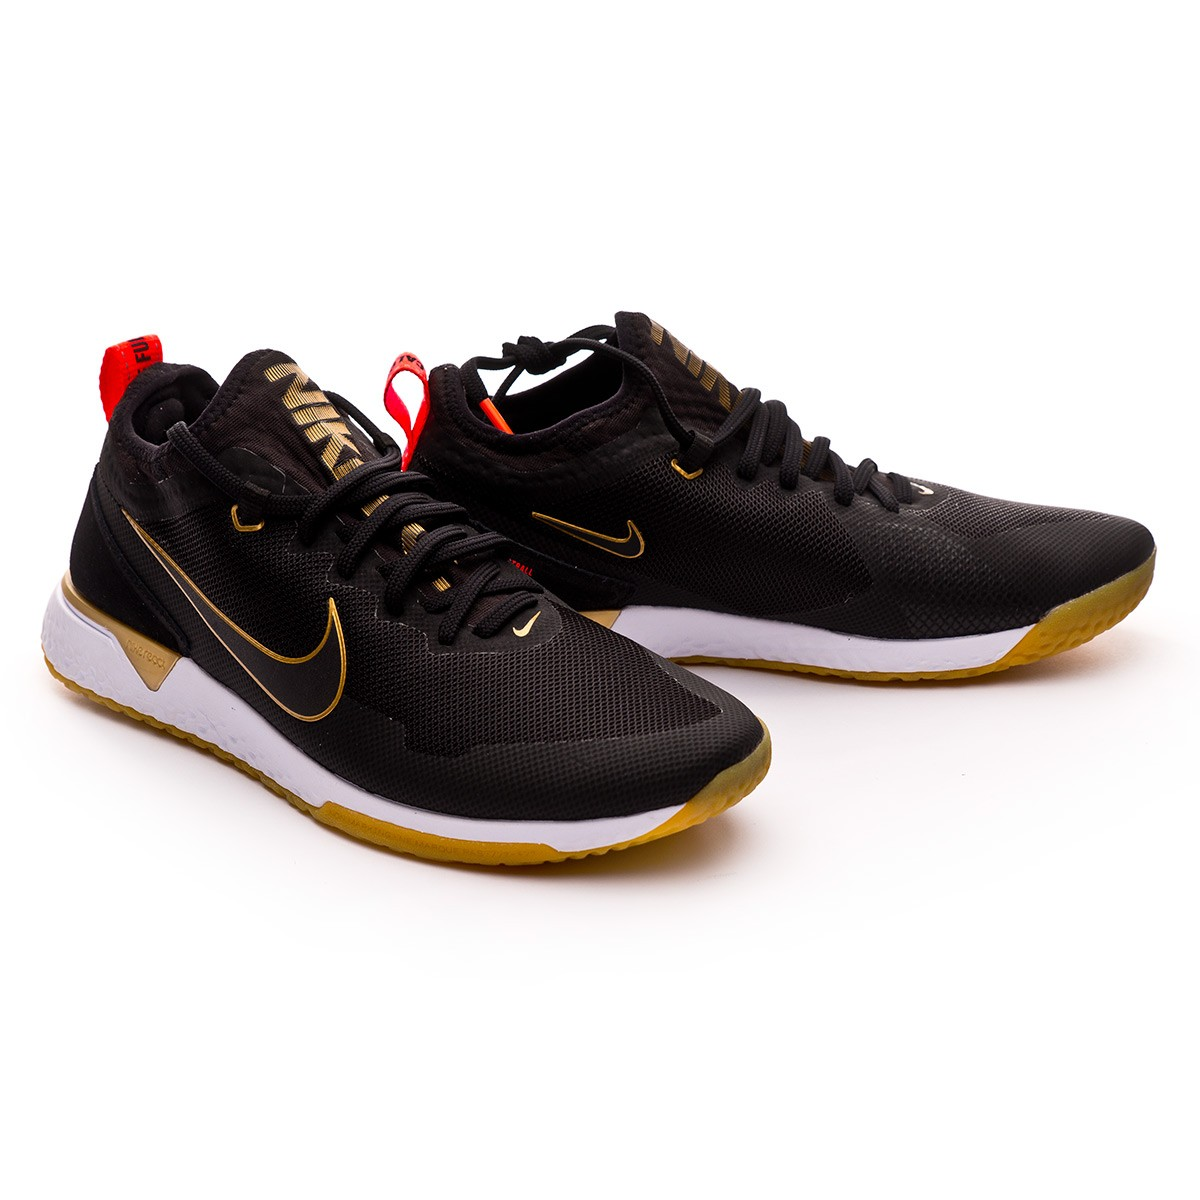 buy popular 2255f d2e16 Metallic Black Bright Zapatilla F c Nike Gold Crimson nZwxAqYUf